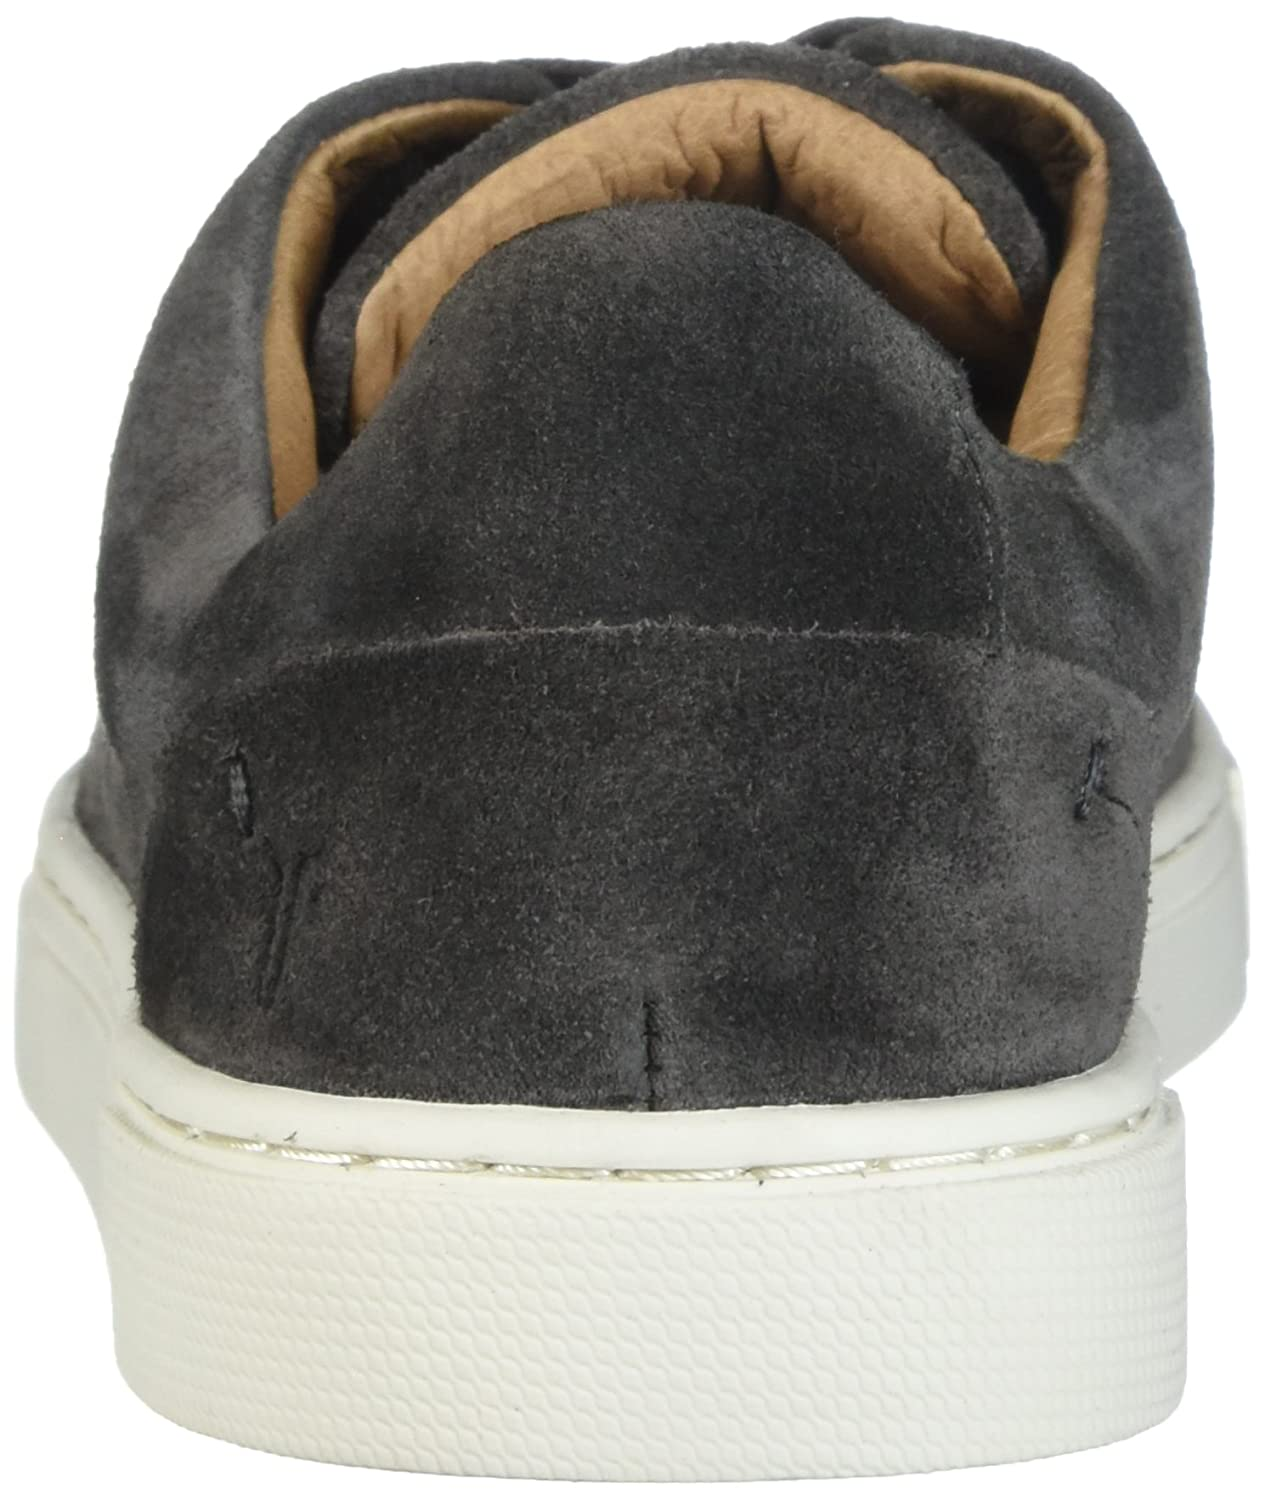 FRYE Sneaker Women's Ivy Low Lace Fashion Sneaker FRYE B06XQQF2ND 6 B(M) US|Grigio 27bdfe